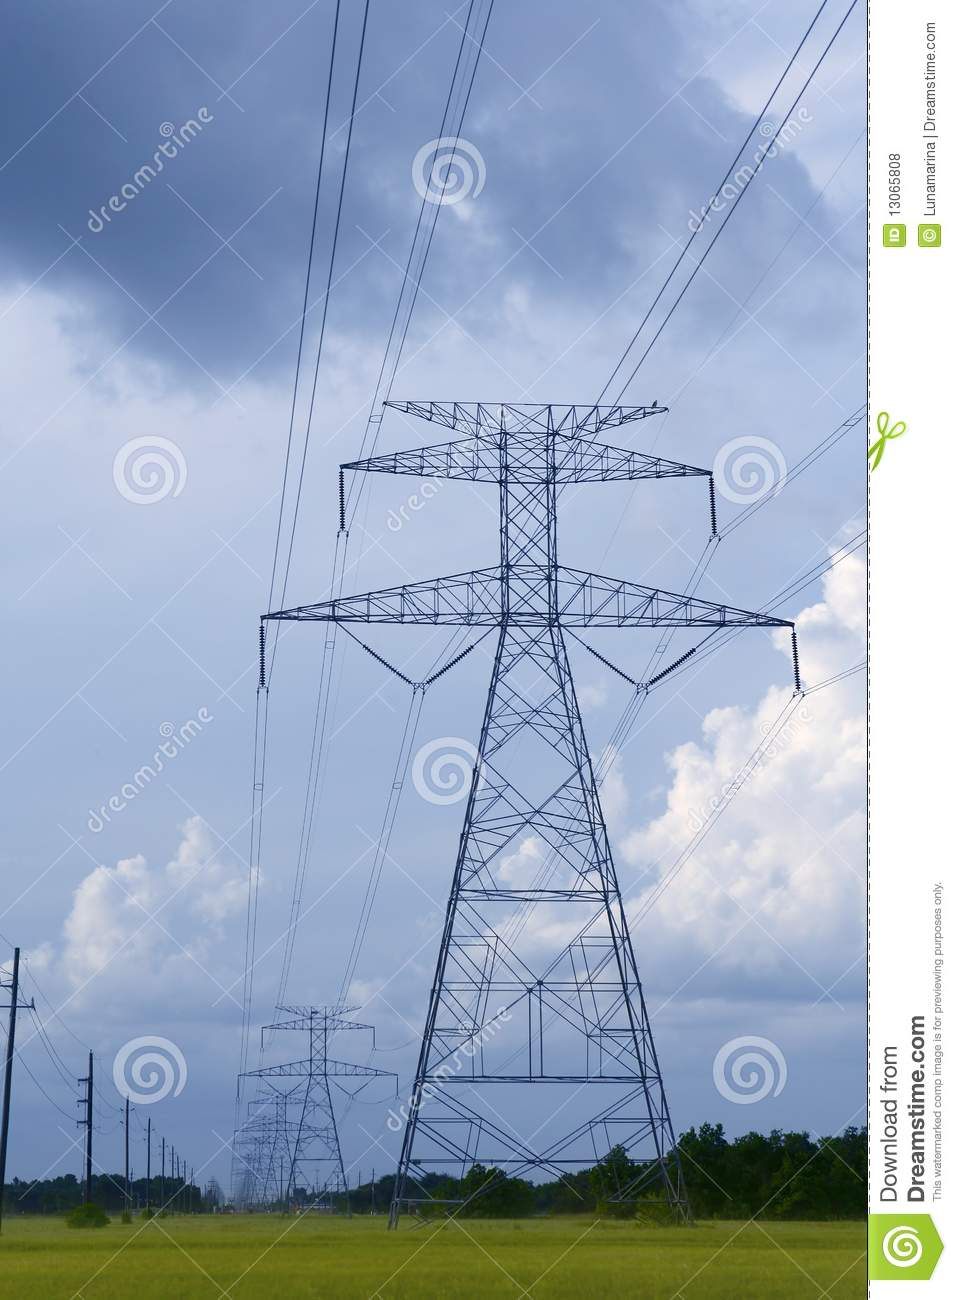 Christiano Tesla furthermore  also Kv Lattice Steel Tower Electric Transmission Line X together with Electrical Towers Electricity Pylons Sunset in addition Objectives Provide An Understanding Of The Principles Involved And Methods Used For Surveying Transmission Lines. on electrical transmission towers